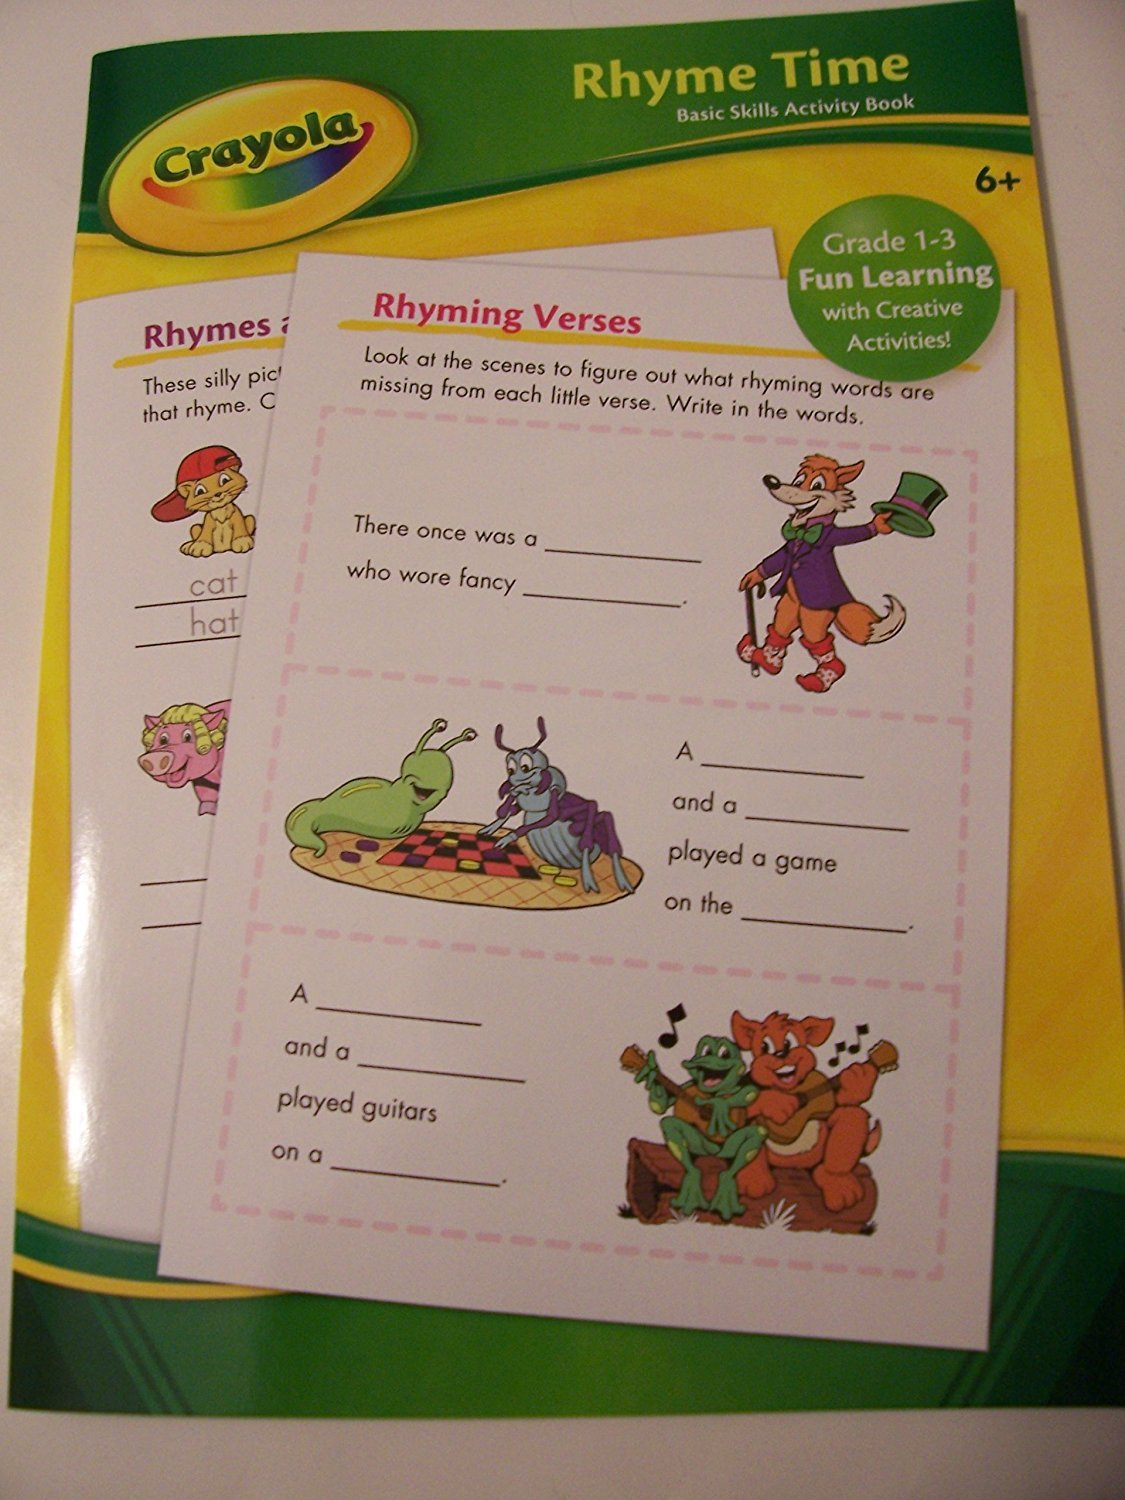 Crayola Educational Activity Book ~ Rhyme Time (Grade 1-3 Fun Learning with Creative Activities)